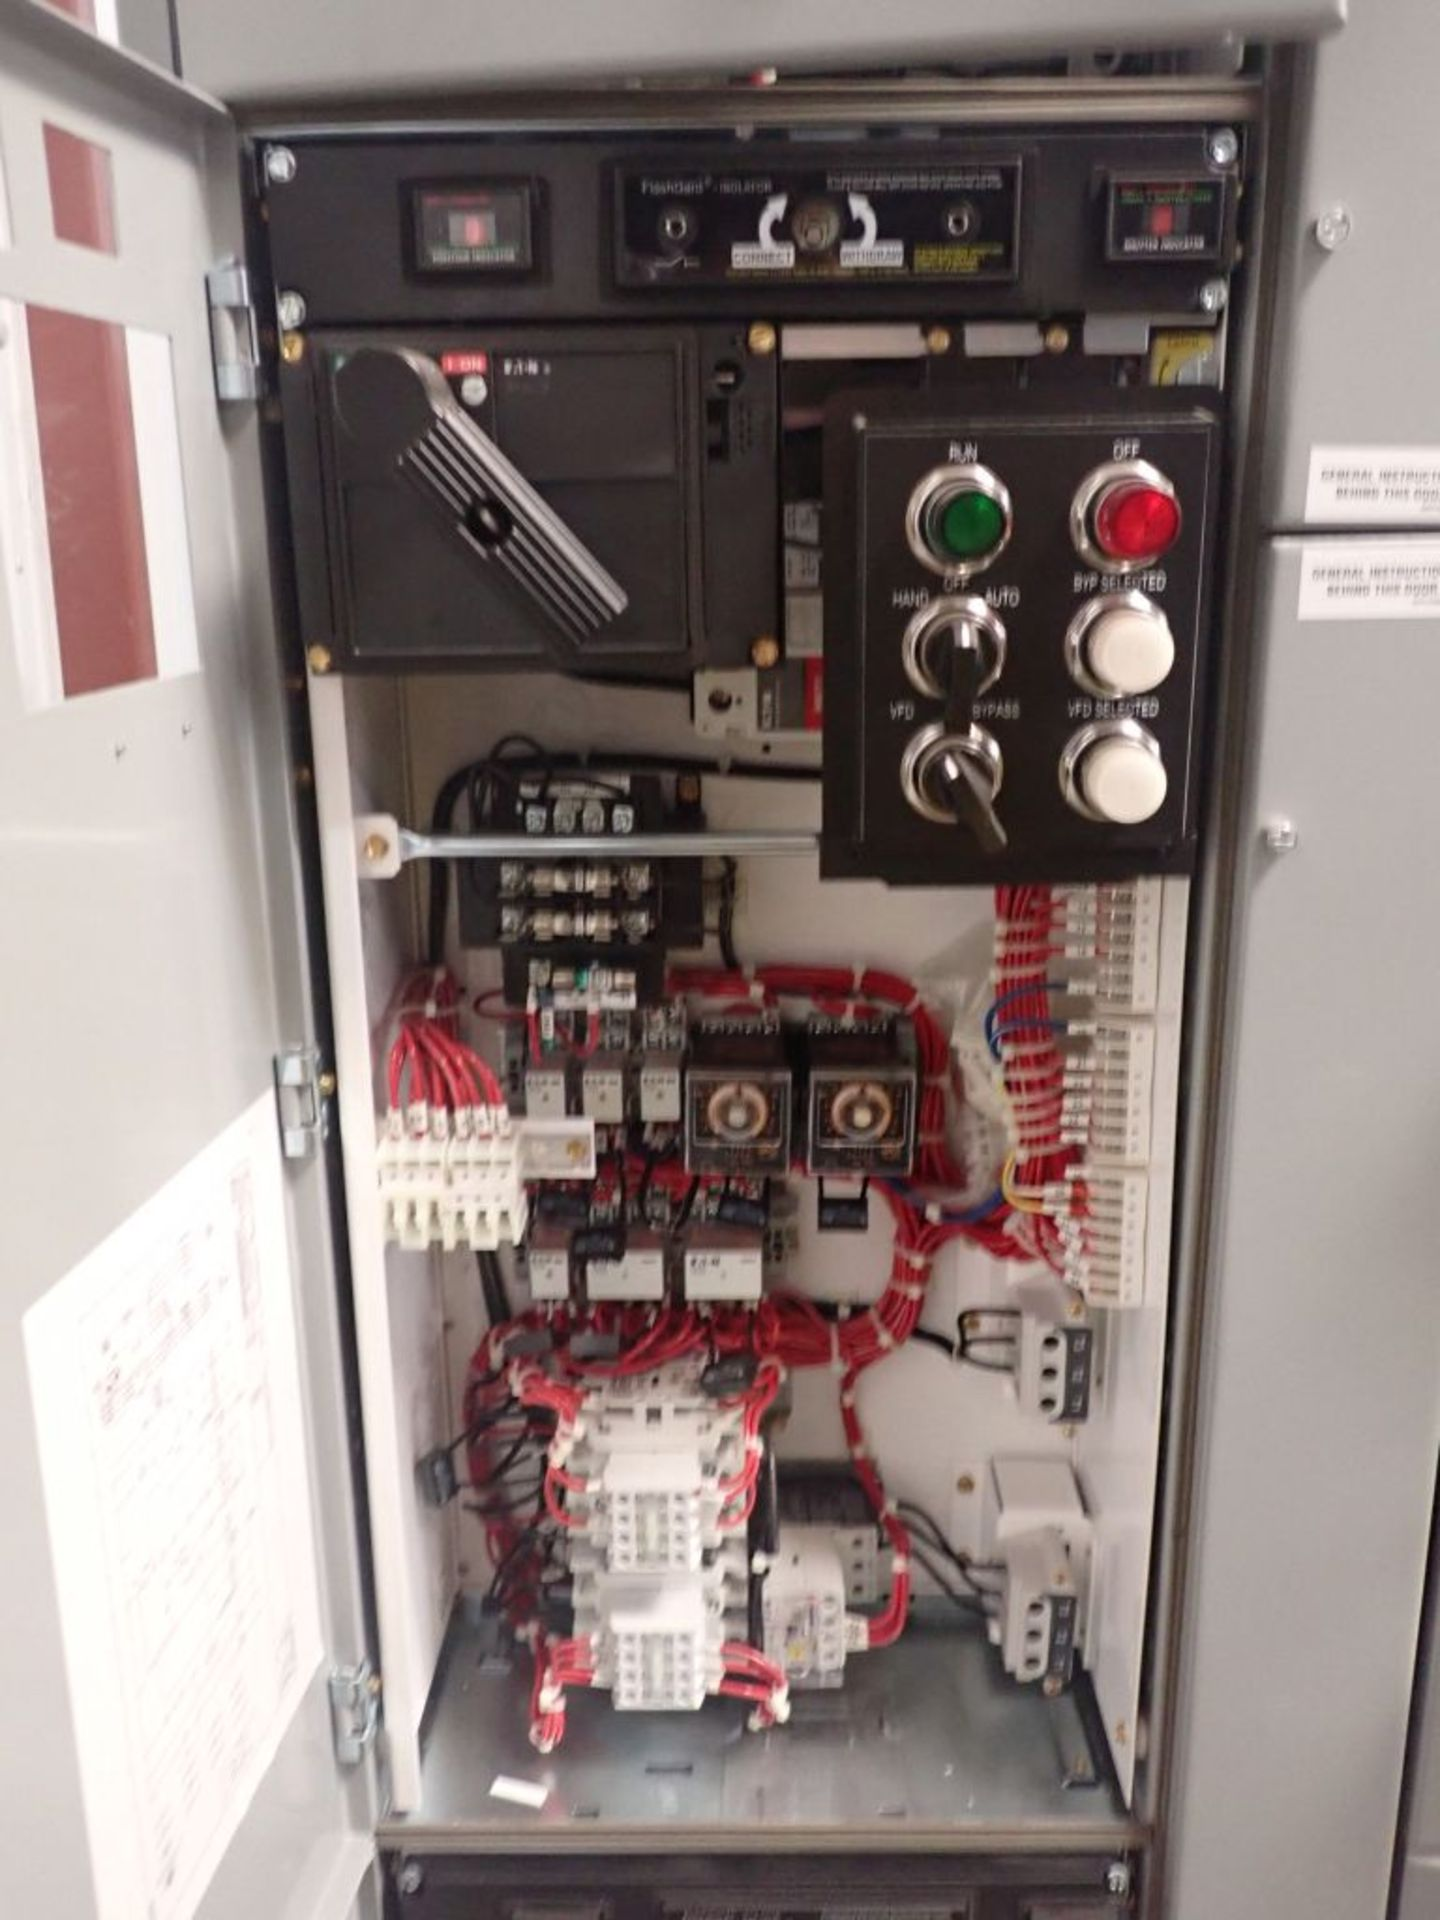 Eaton Freedom Flashgard Motor Control Center   (3) F216-15A-10HP; (1) FDRB-125A, with 150A - Image 16 of 57